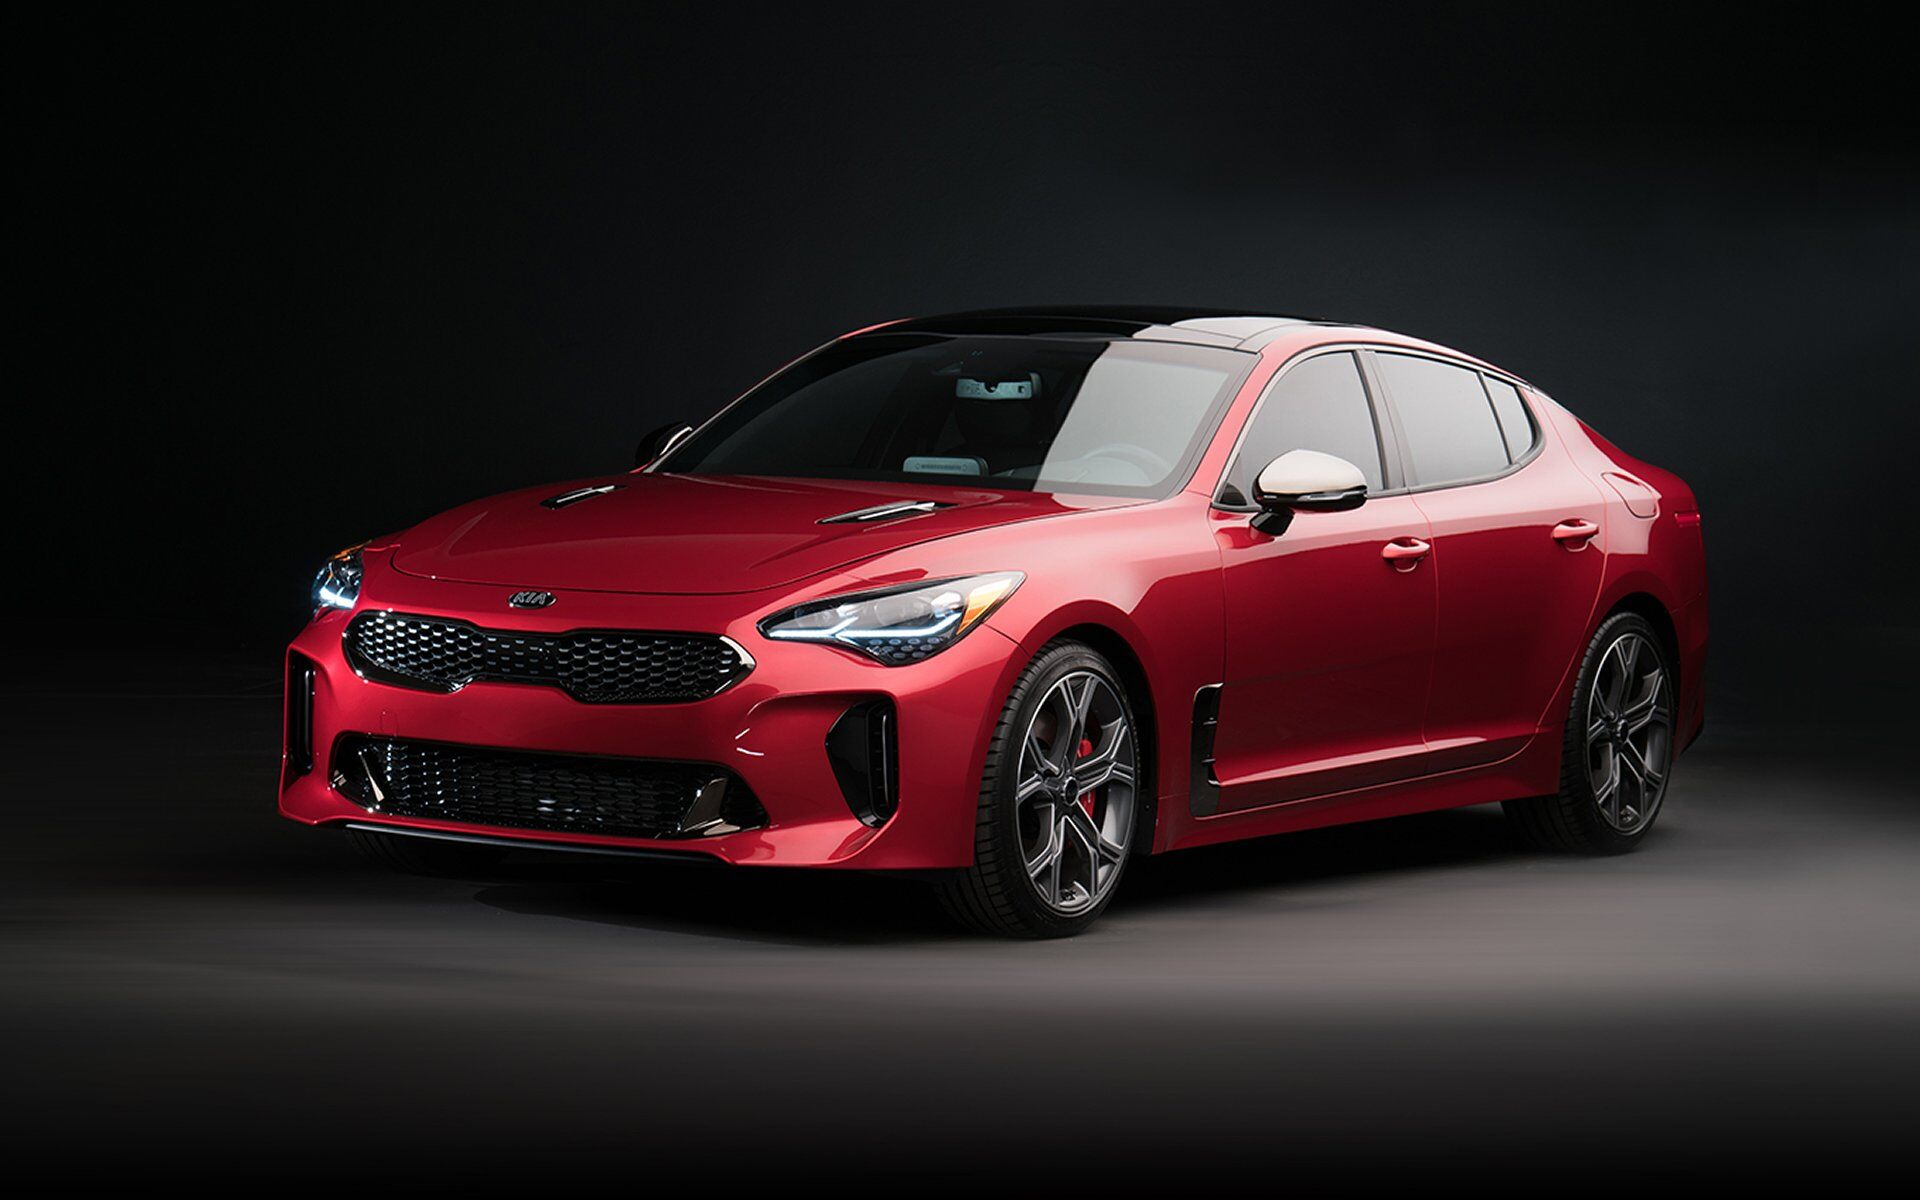 2018 Kia Stinger Test Drive in Phoenix